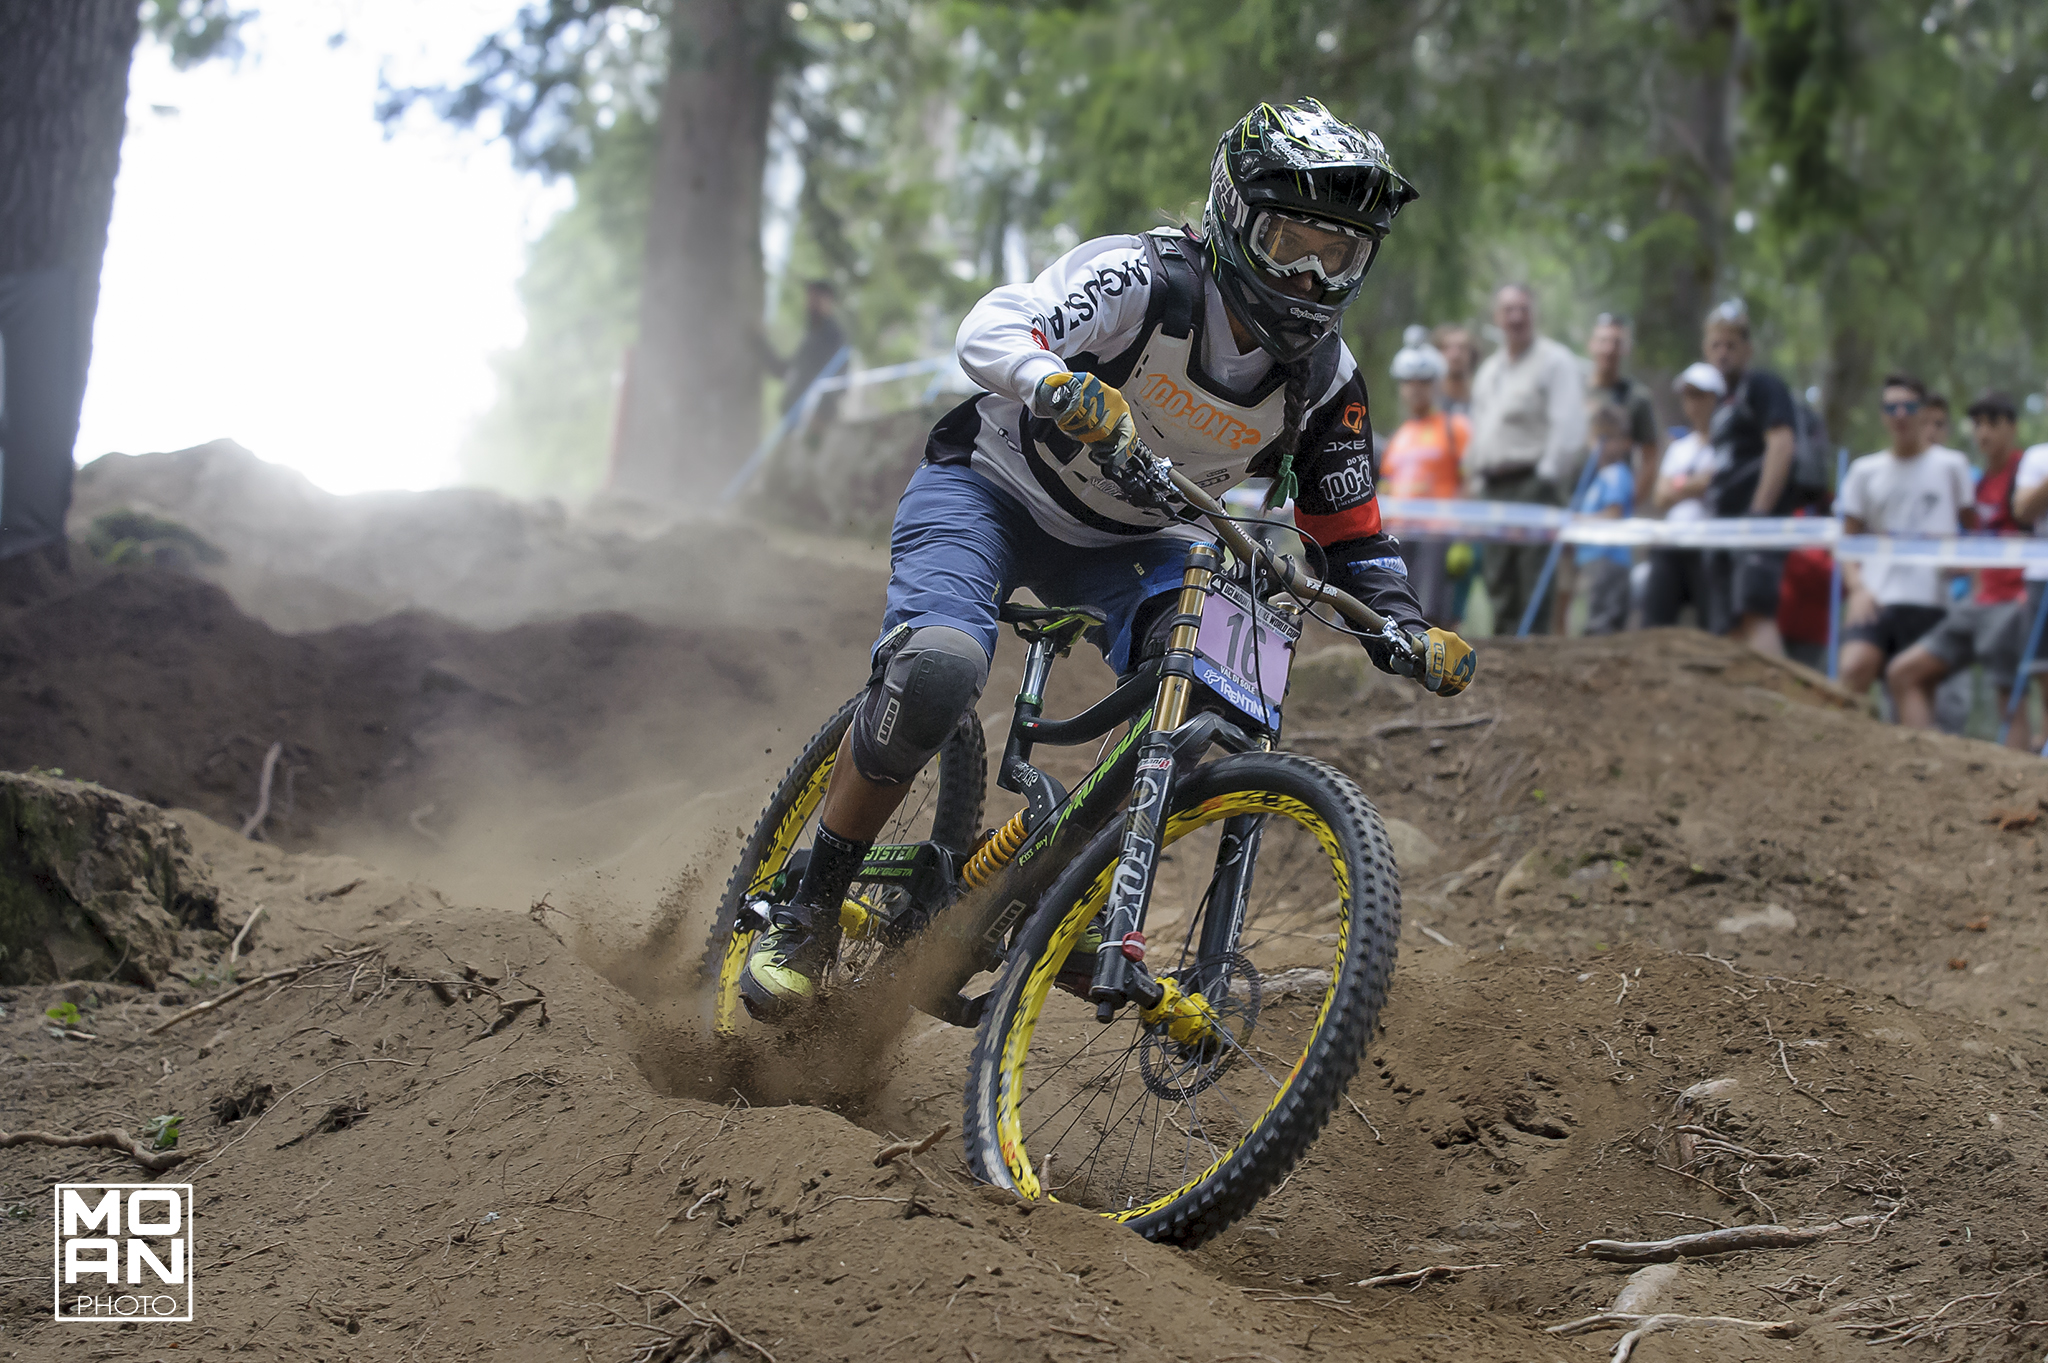 World Cup DownHill Val di Sole 2015...